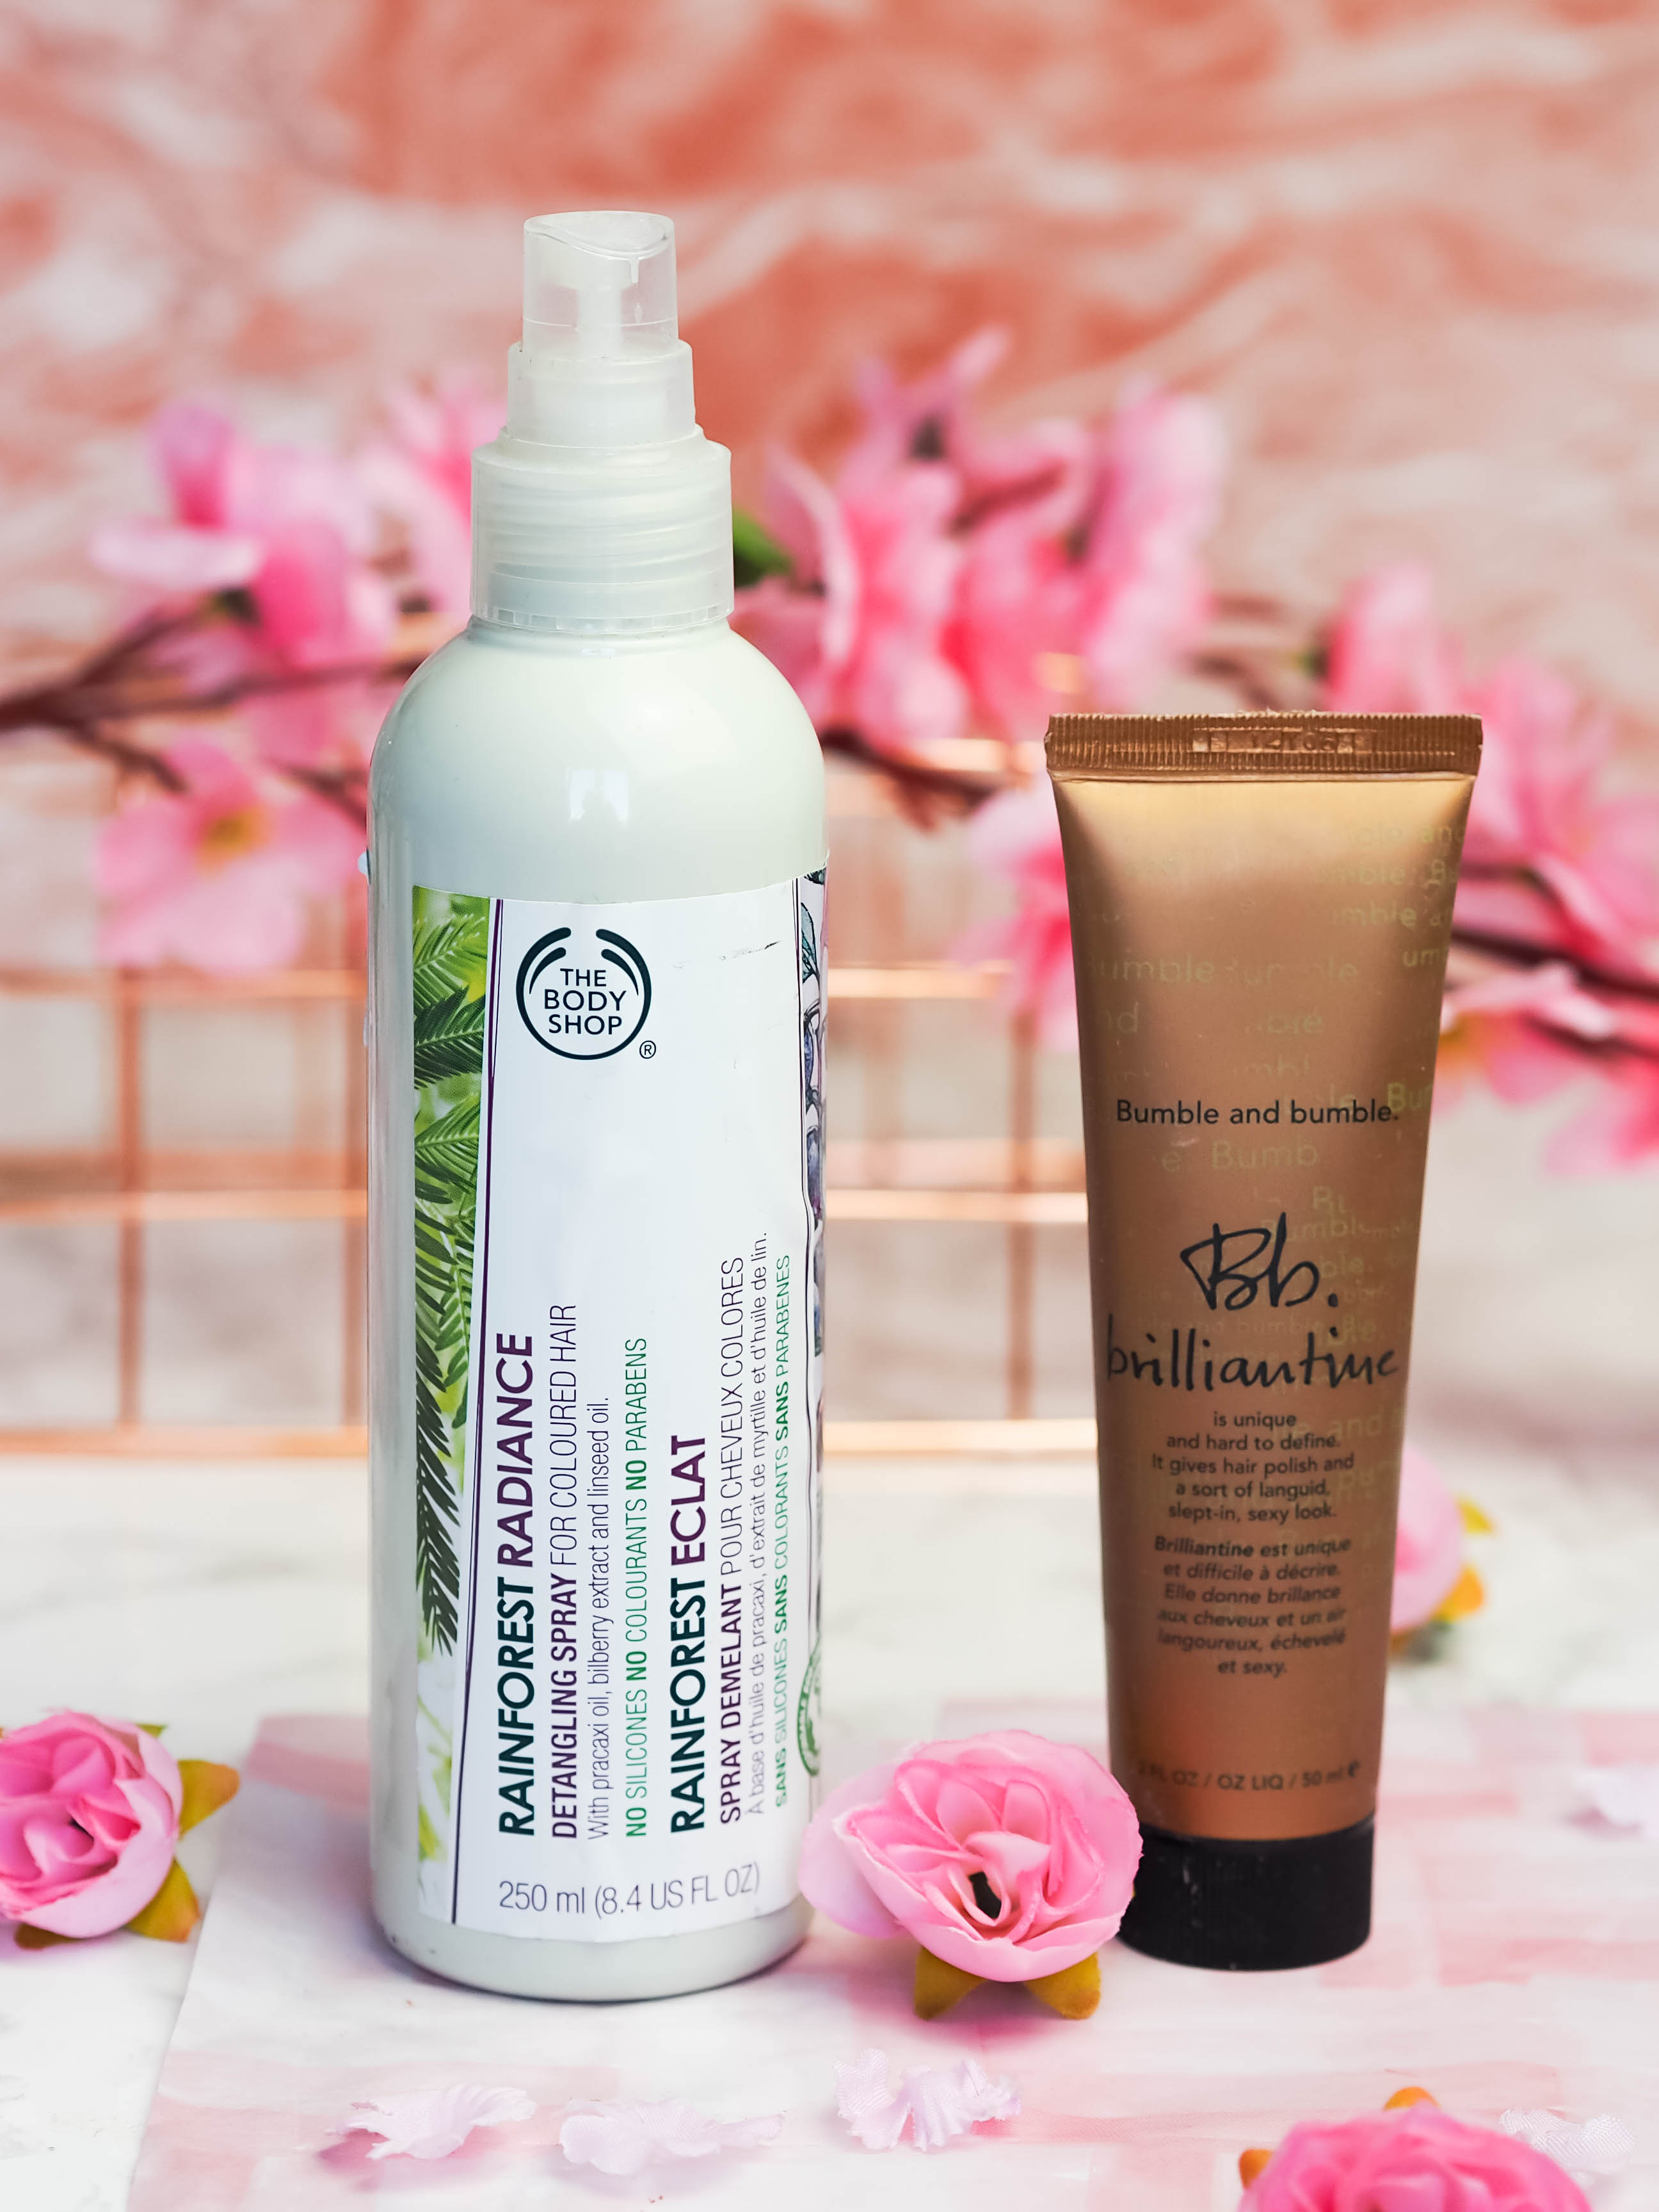 haircare must-haves